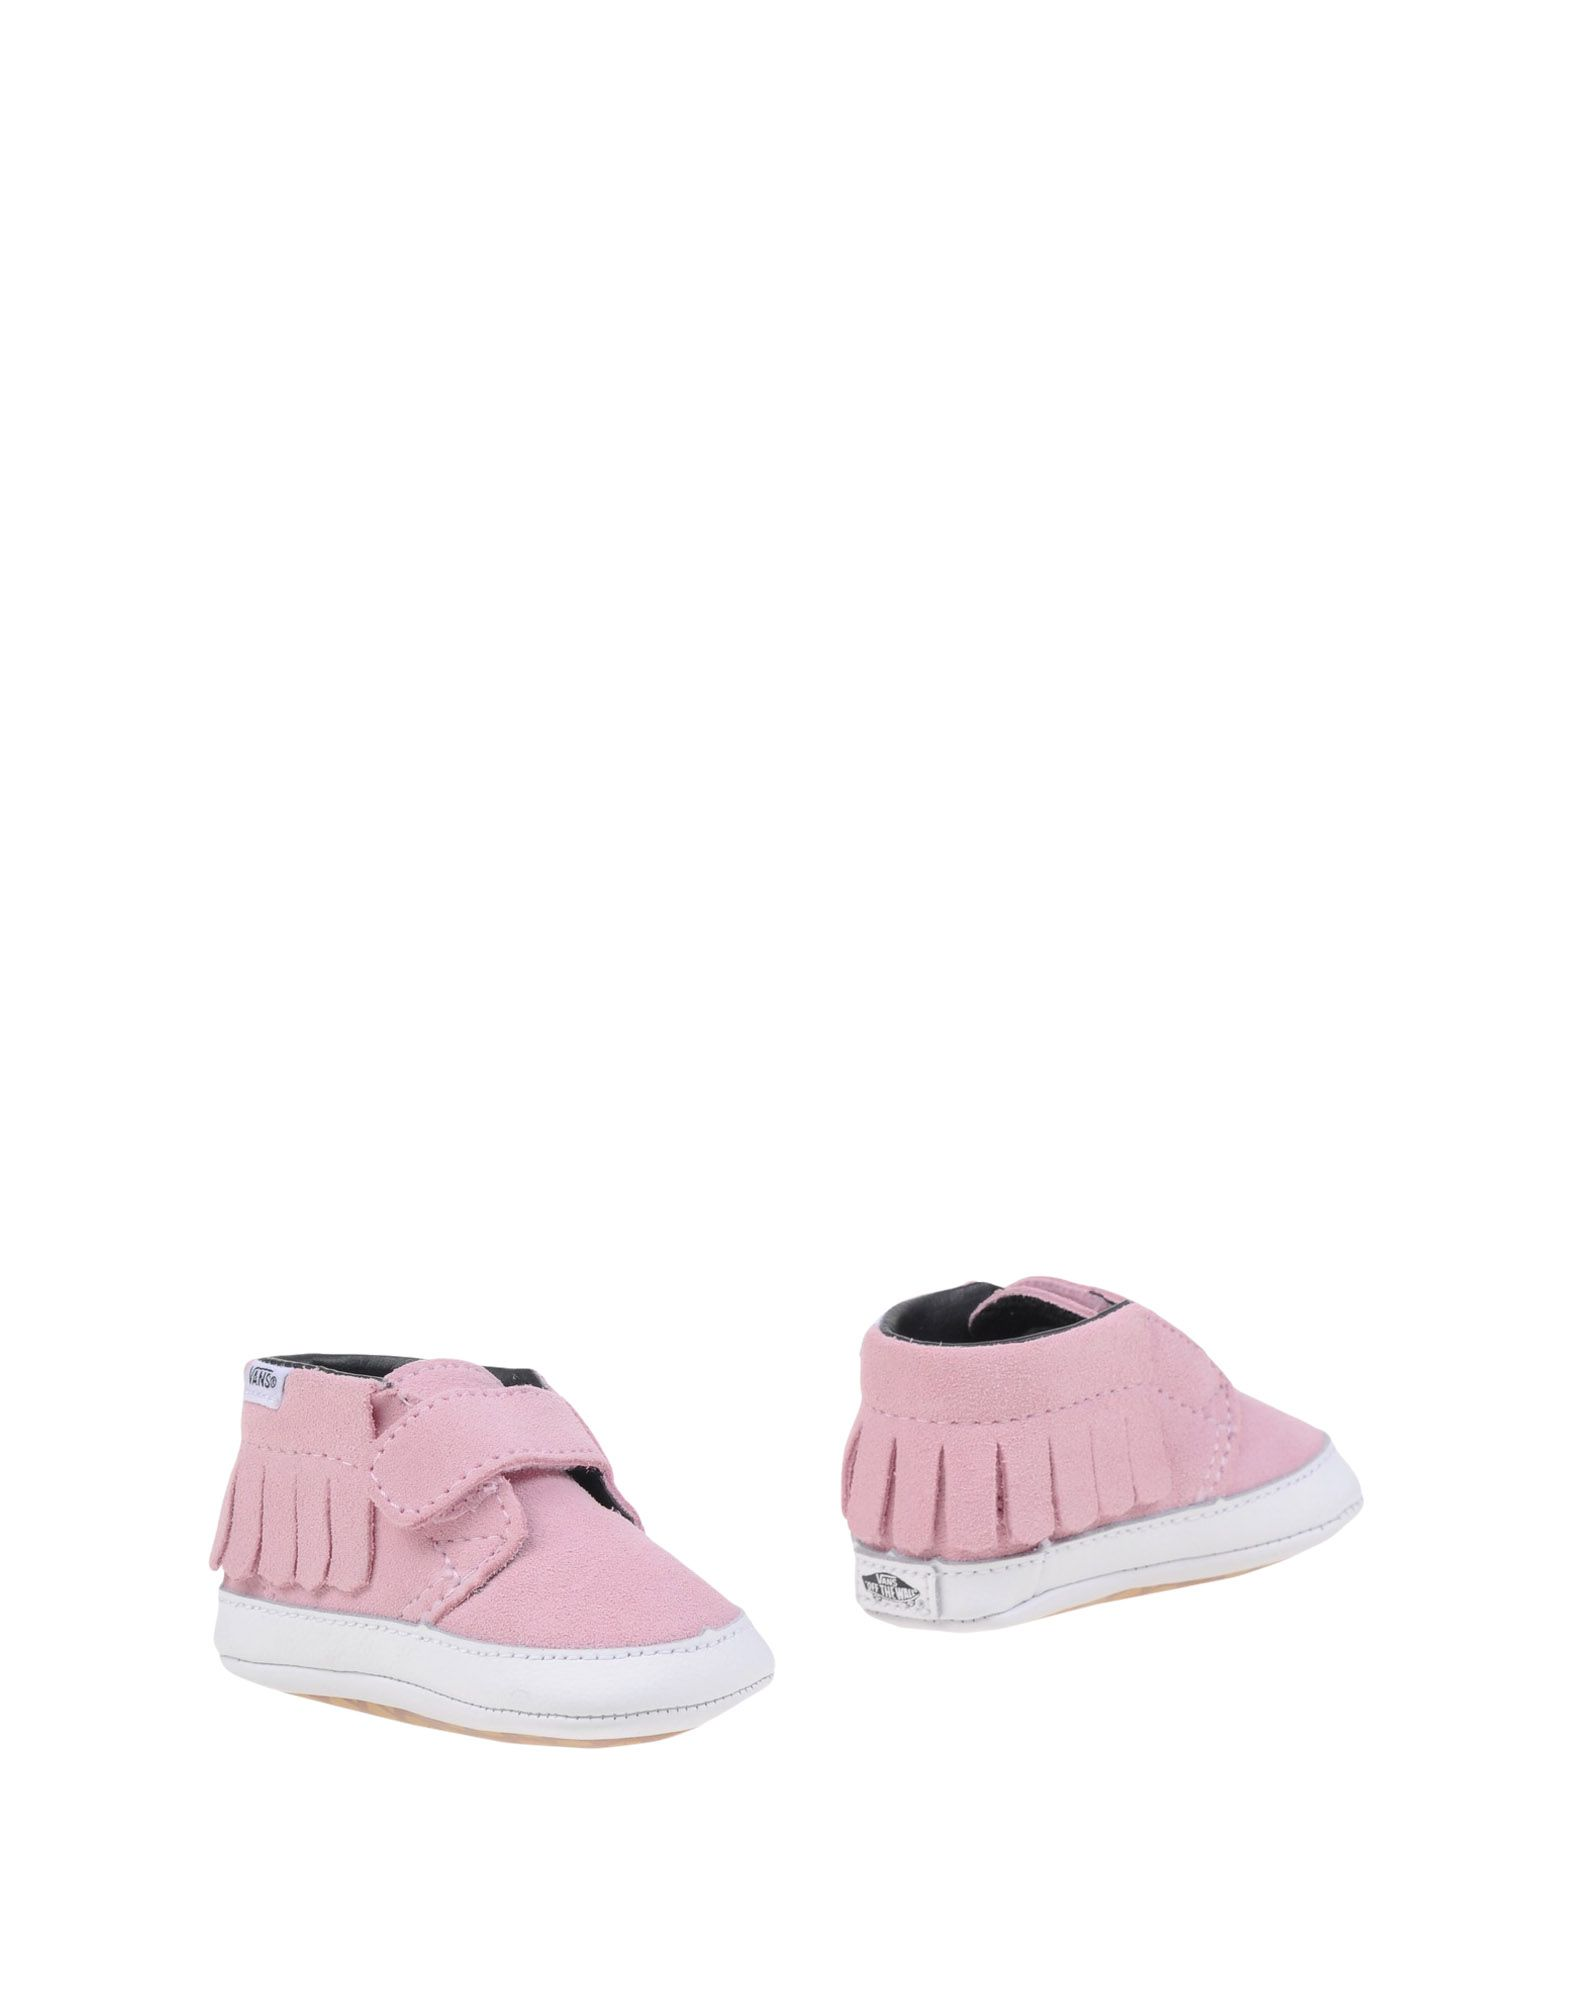 Newborn Shoes Vans Vans Newborn Shoes Footwear Yoox Com